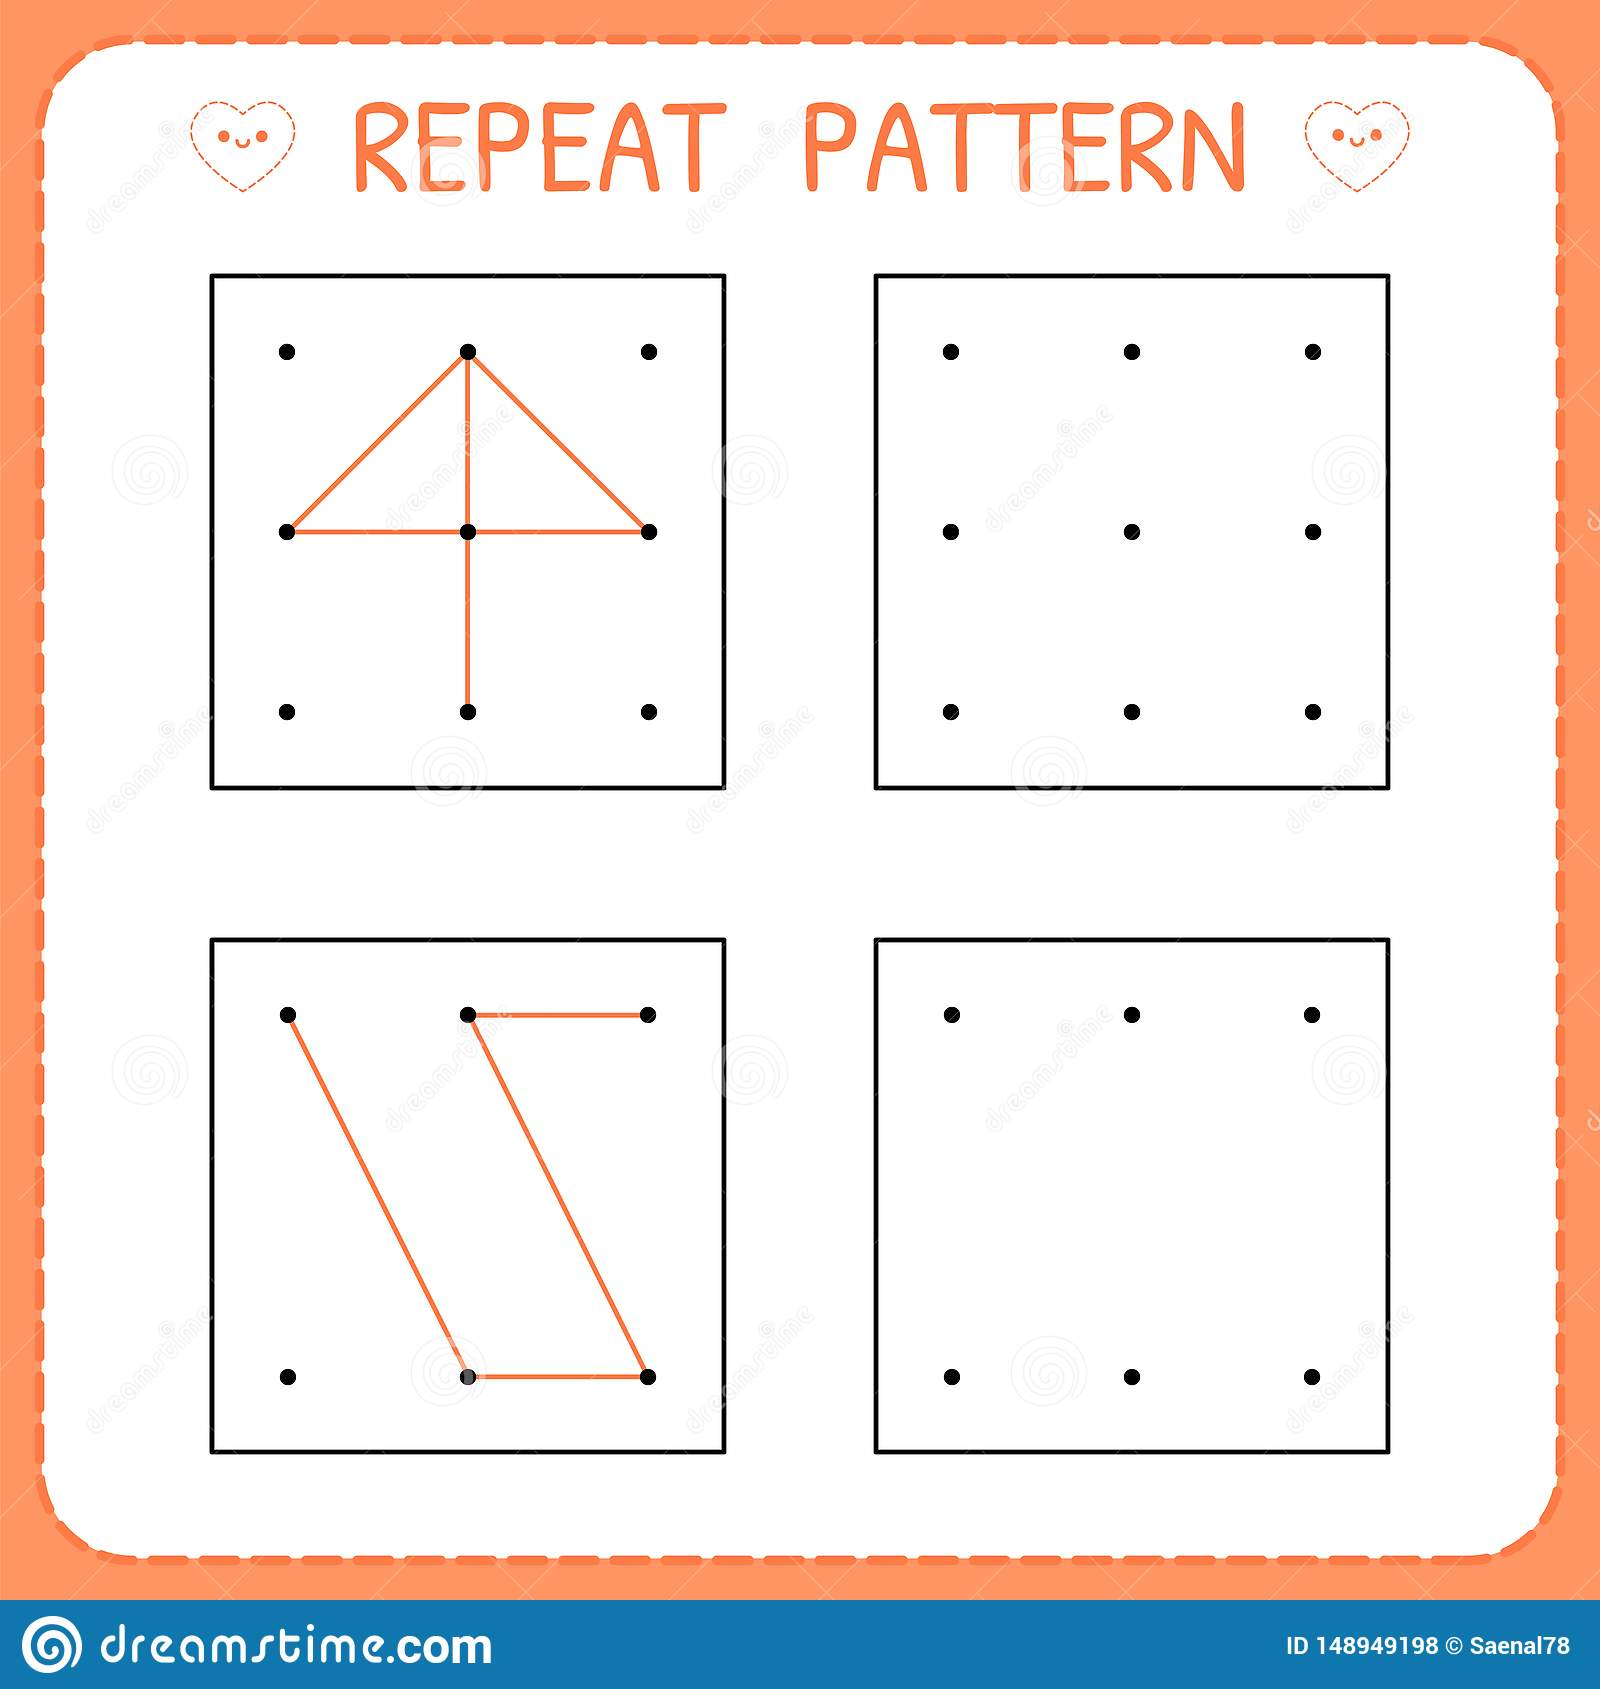 Working Pages For Children Repeat Pattern Preschool